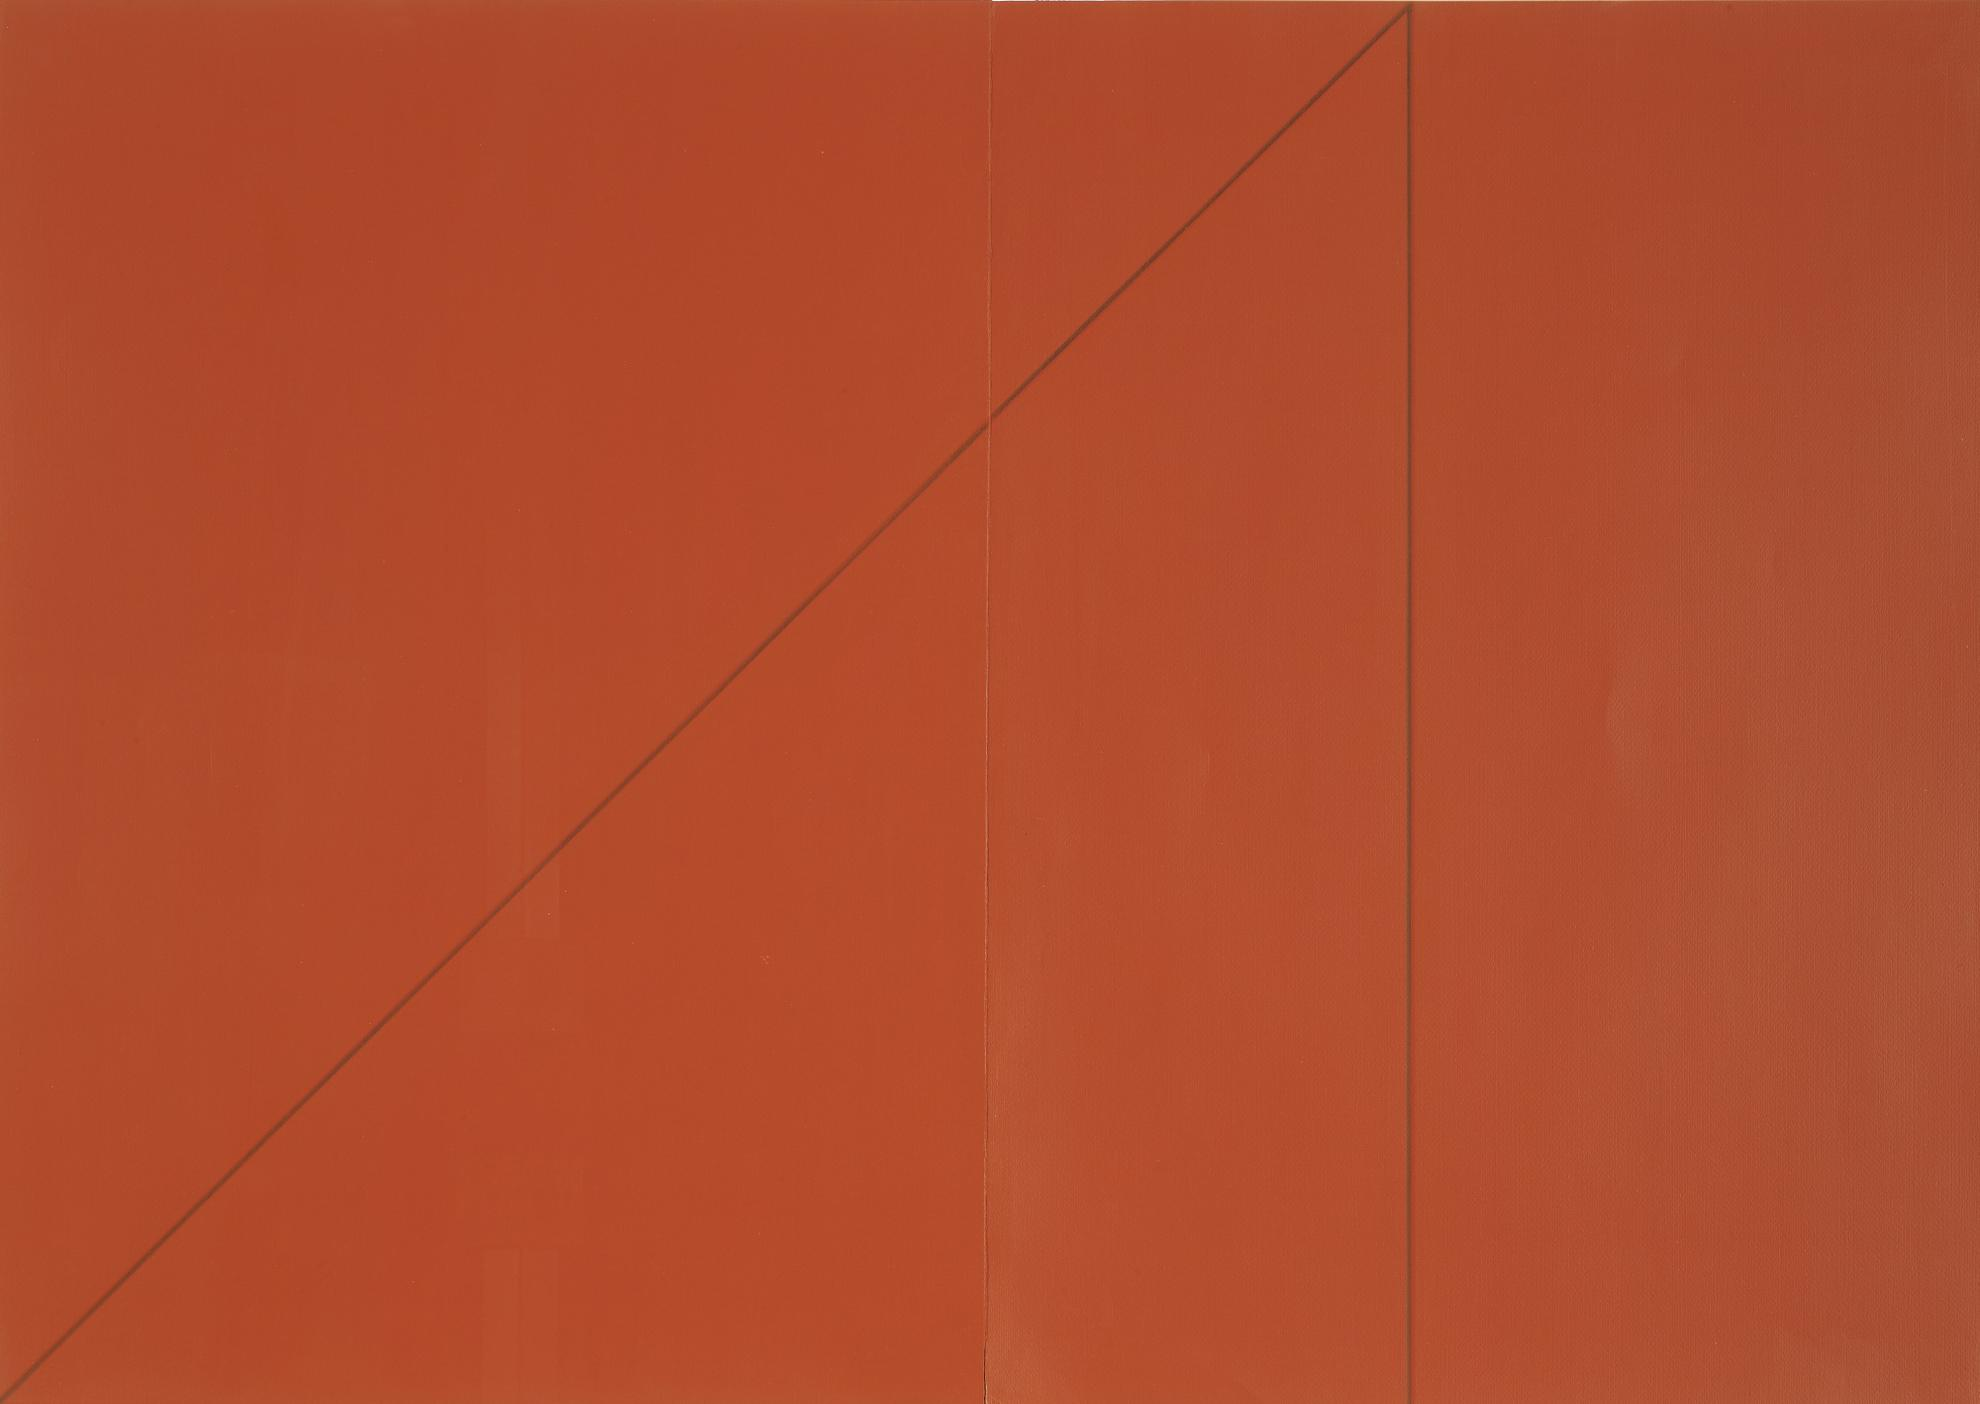 Robert Mangold-A Triangle Within Two Rectangles (Red)-1977